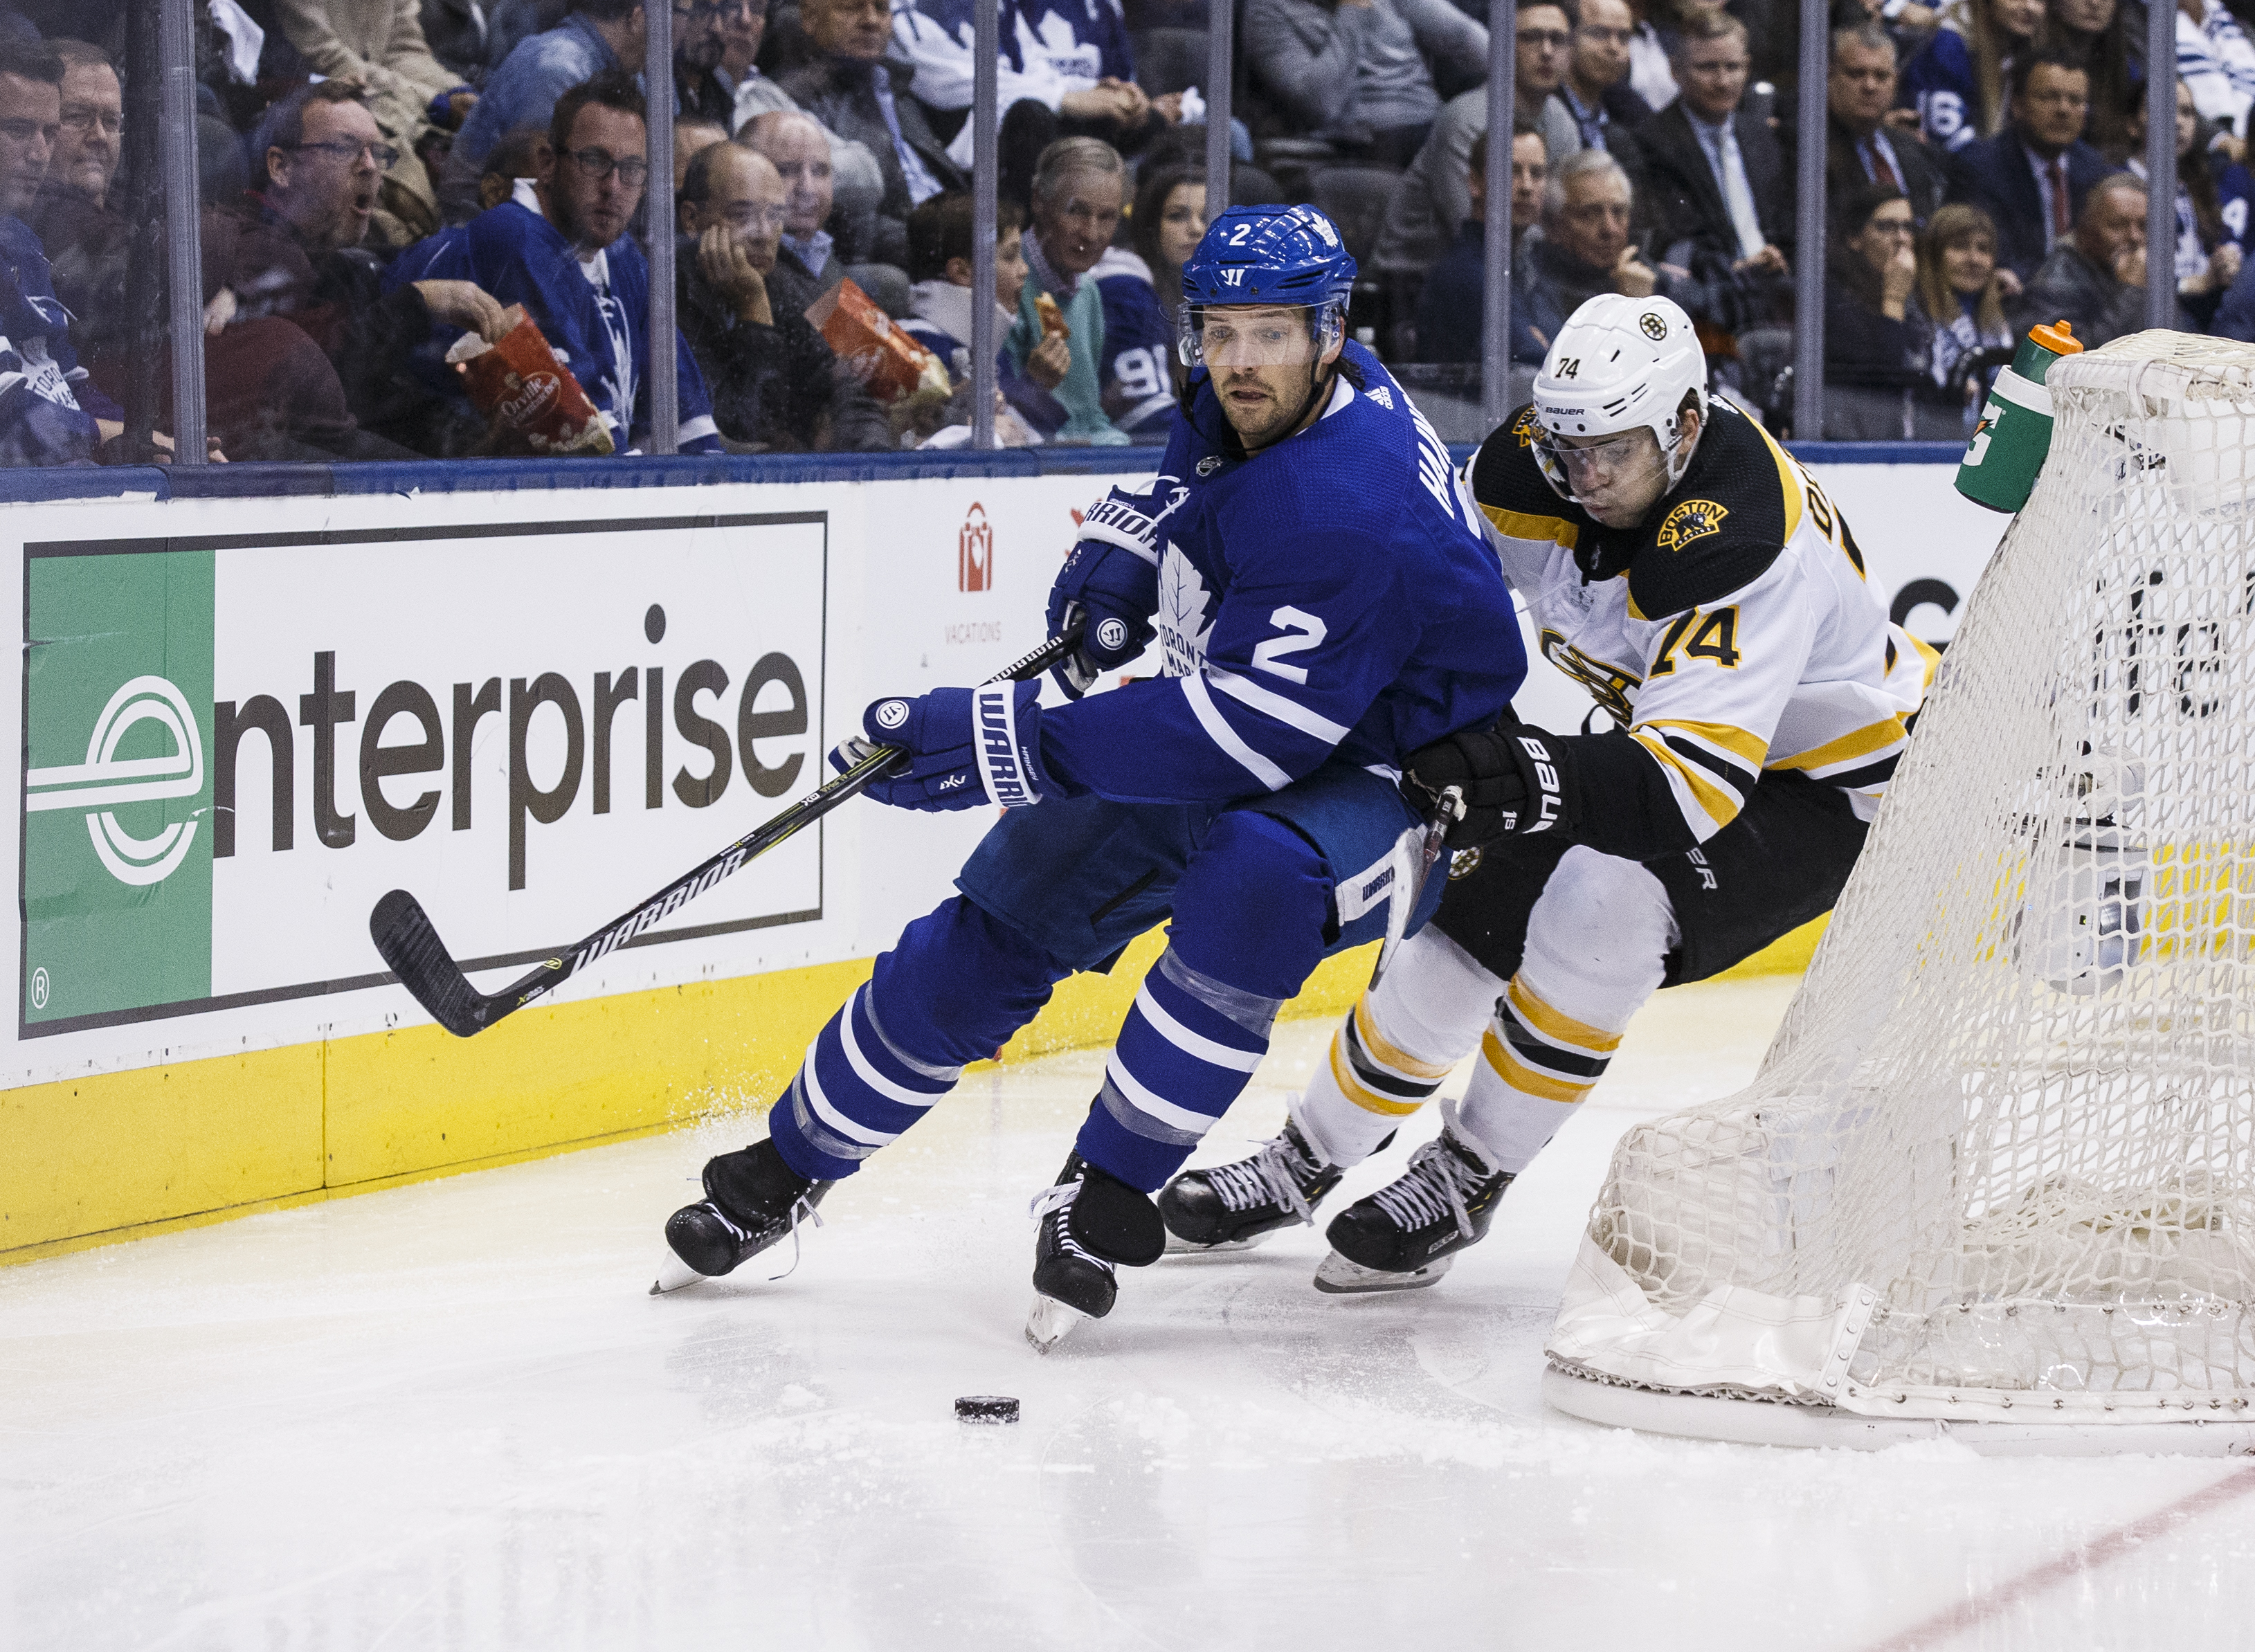 Boston Bruins v Toronto Maple Leafs - Game Three